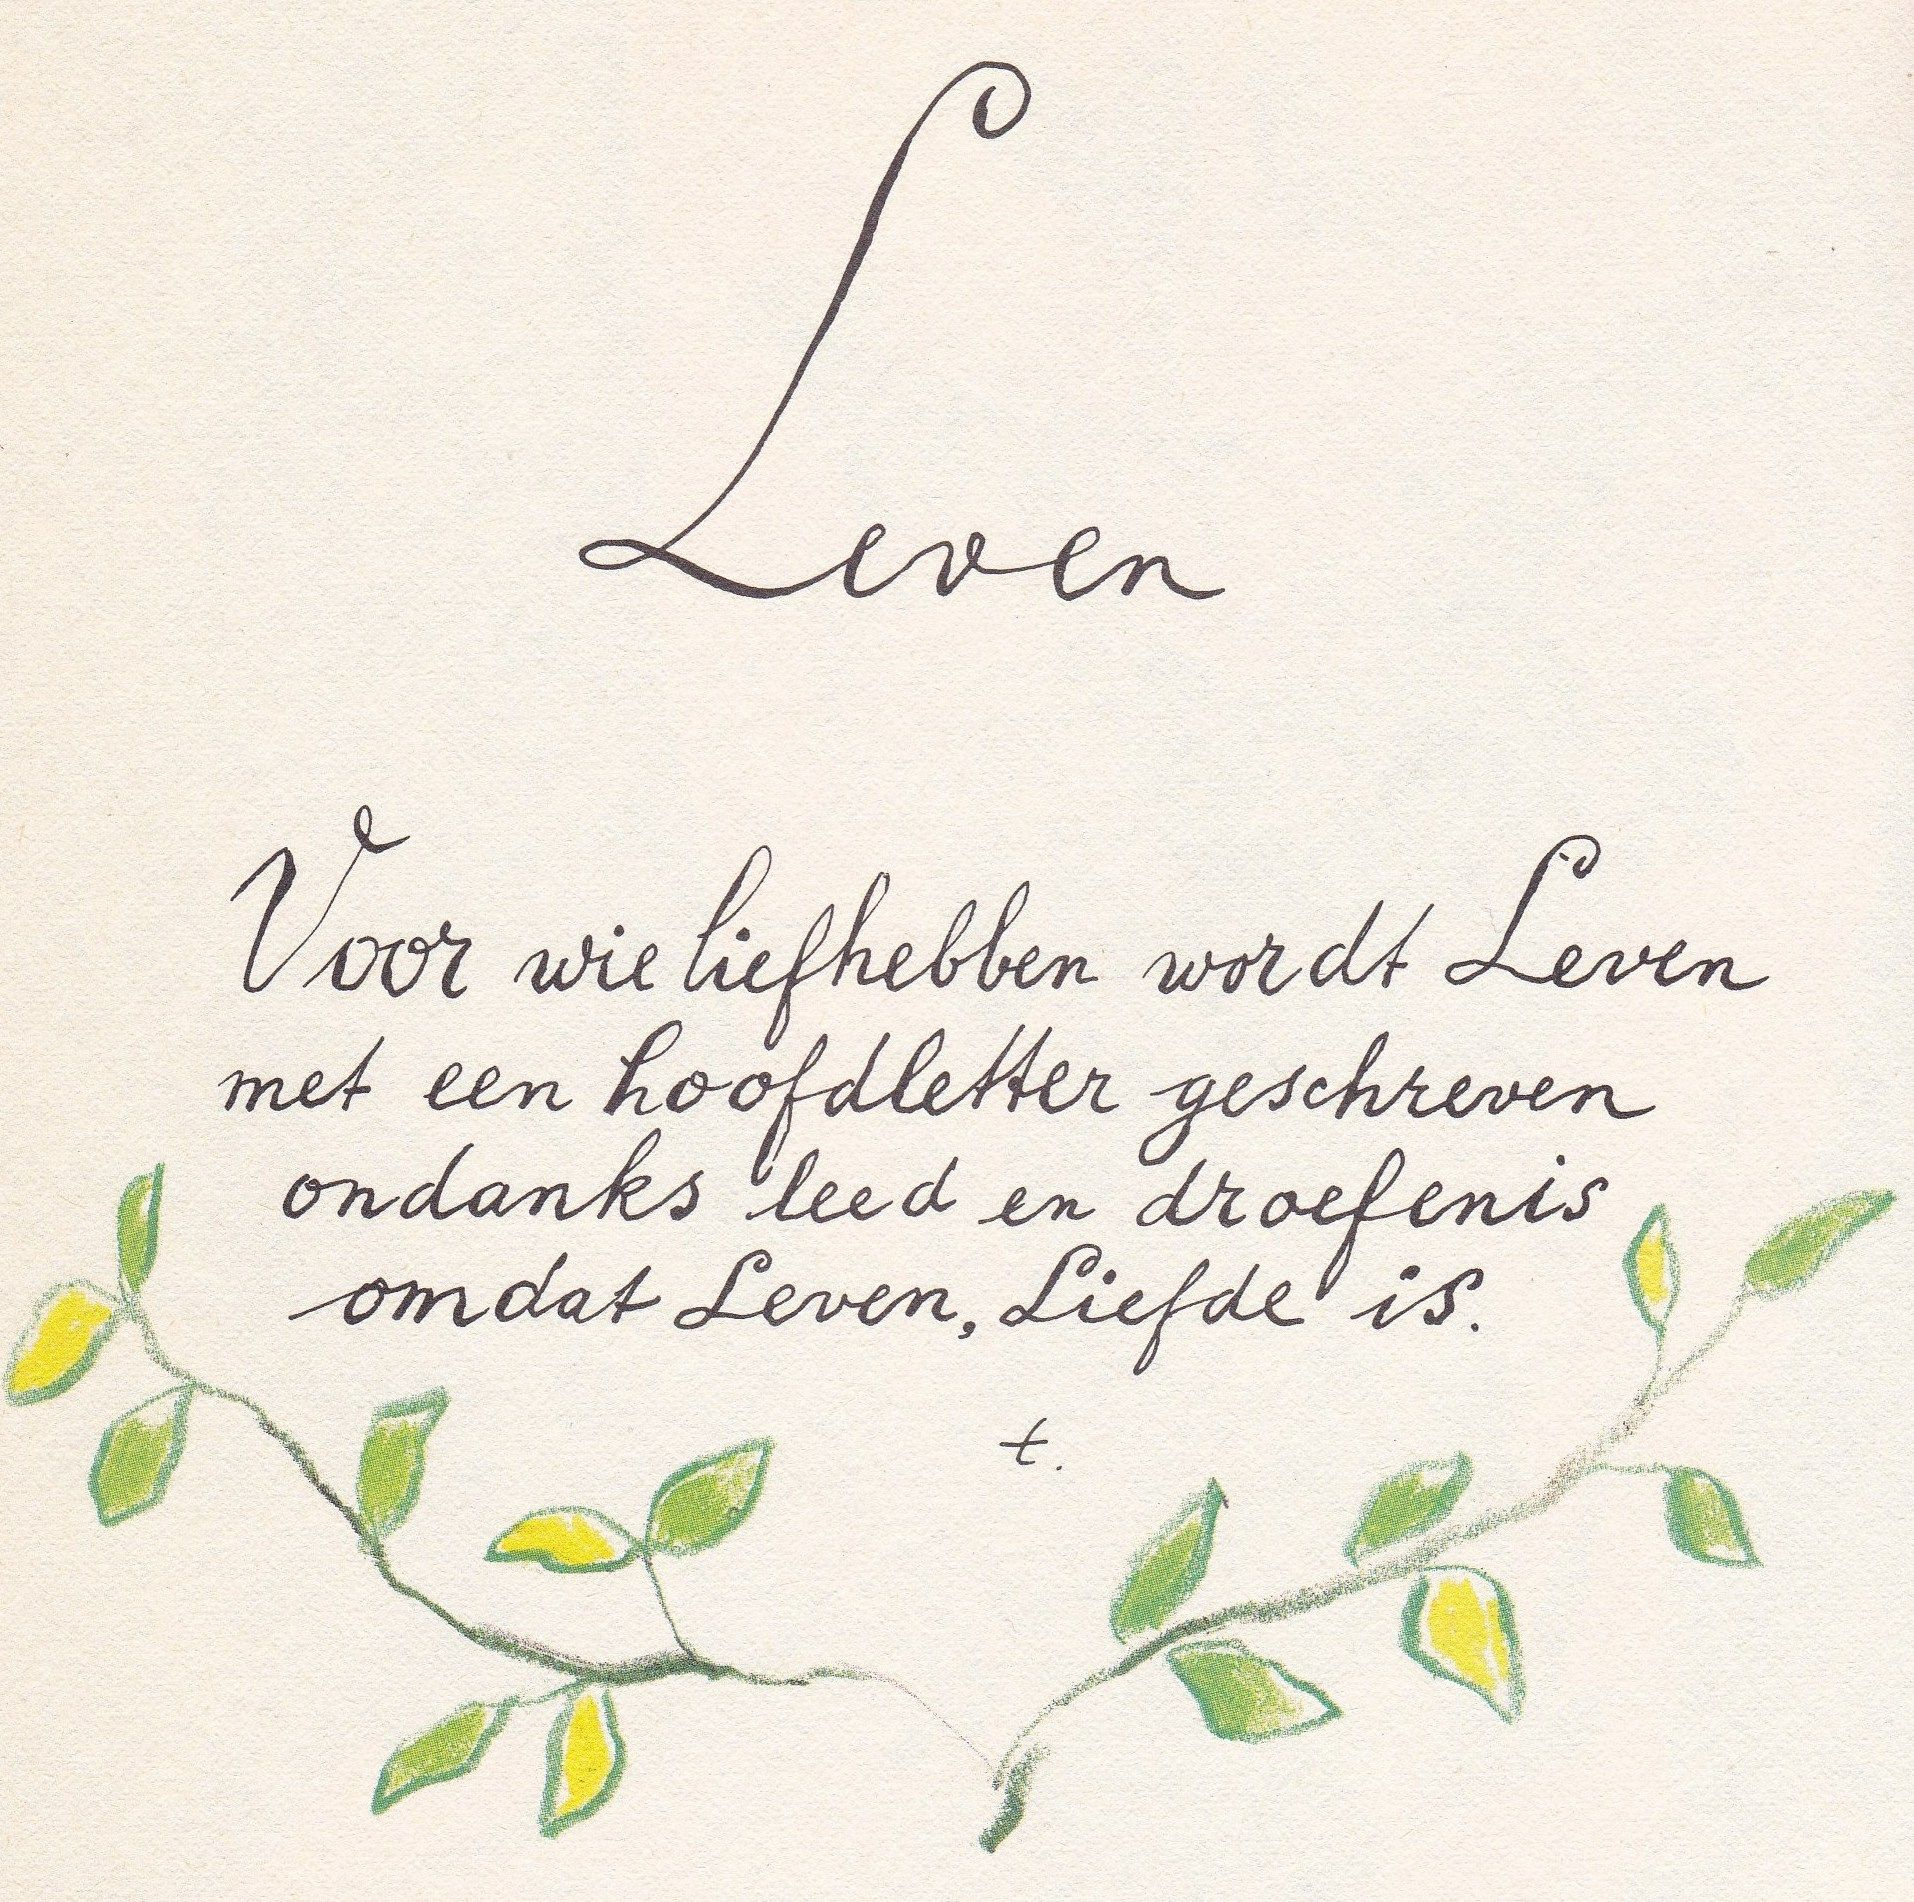 New Leven Toon Hermans | Paula | Pinterest | Toon hermans, Poem and Wisdom @ZU46